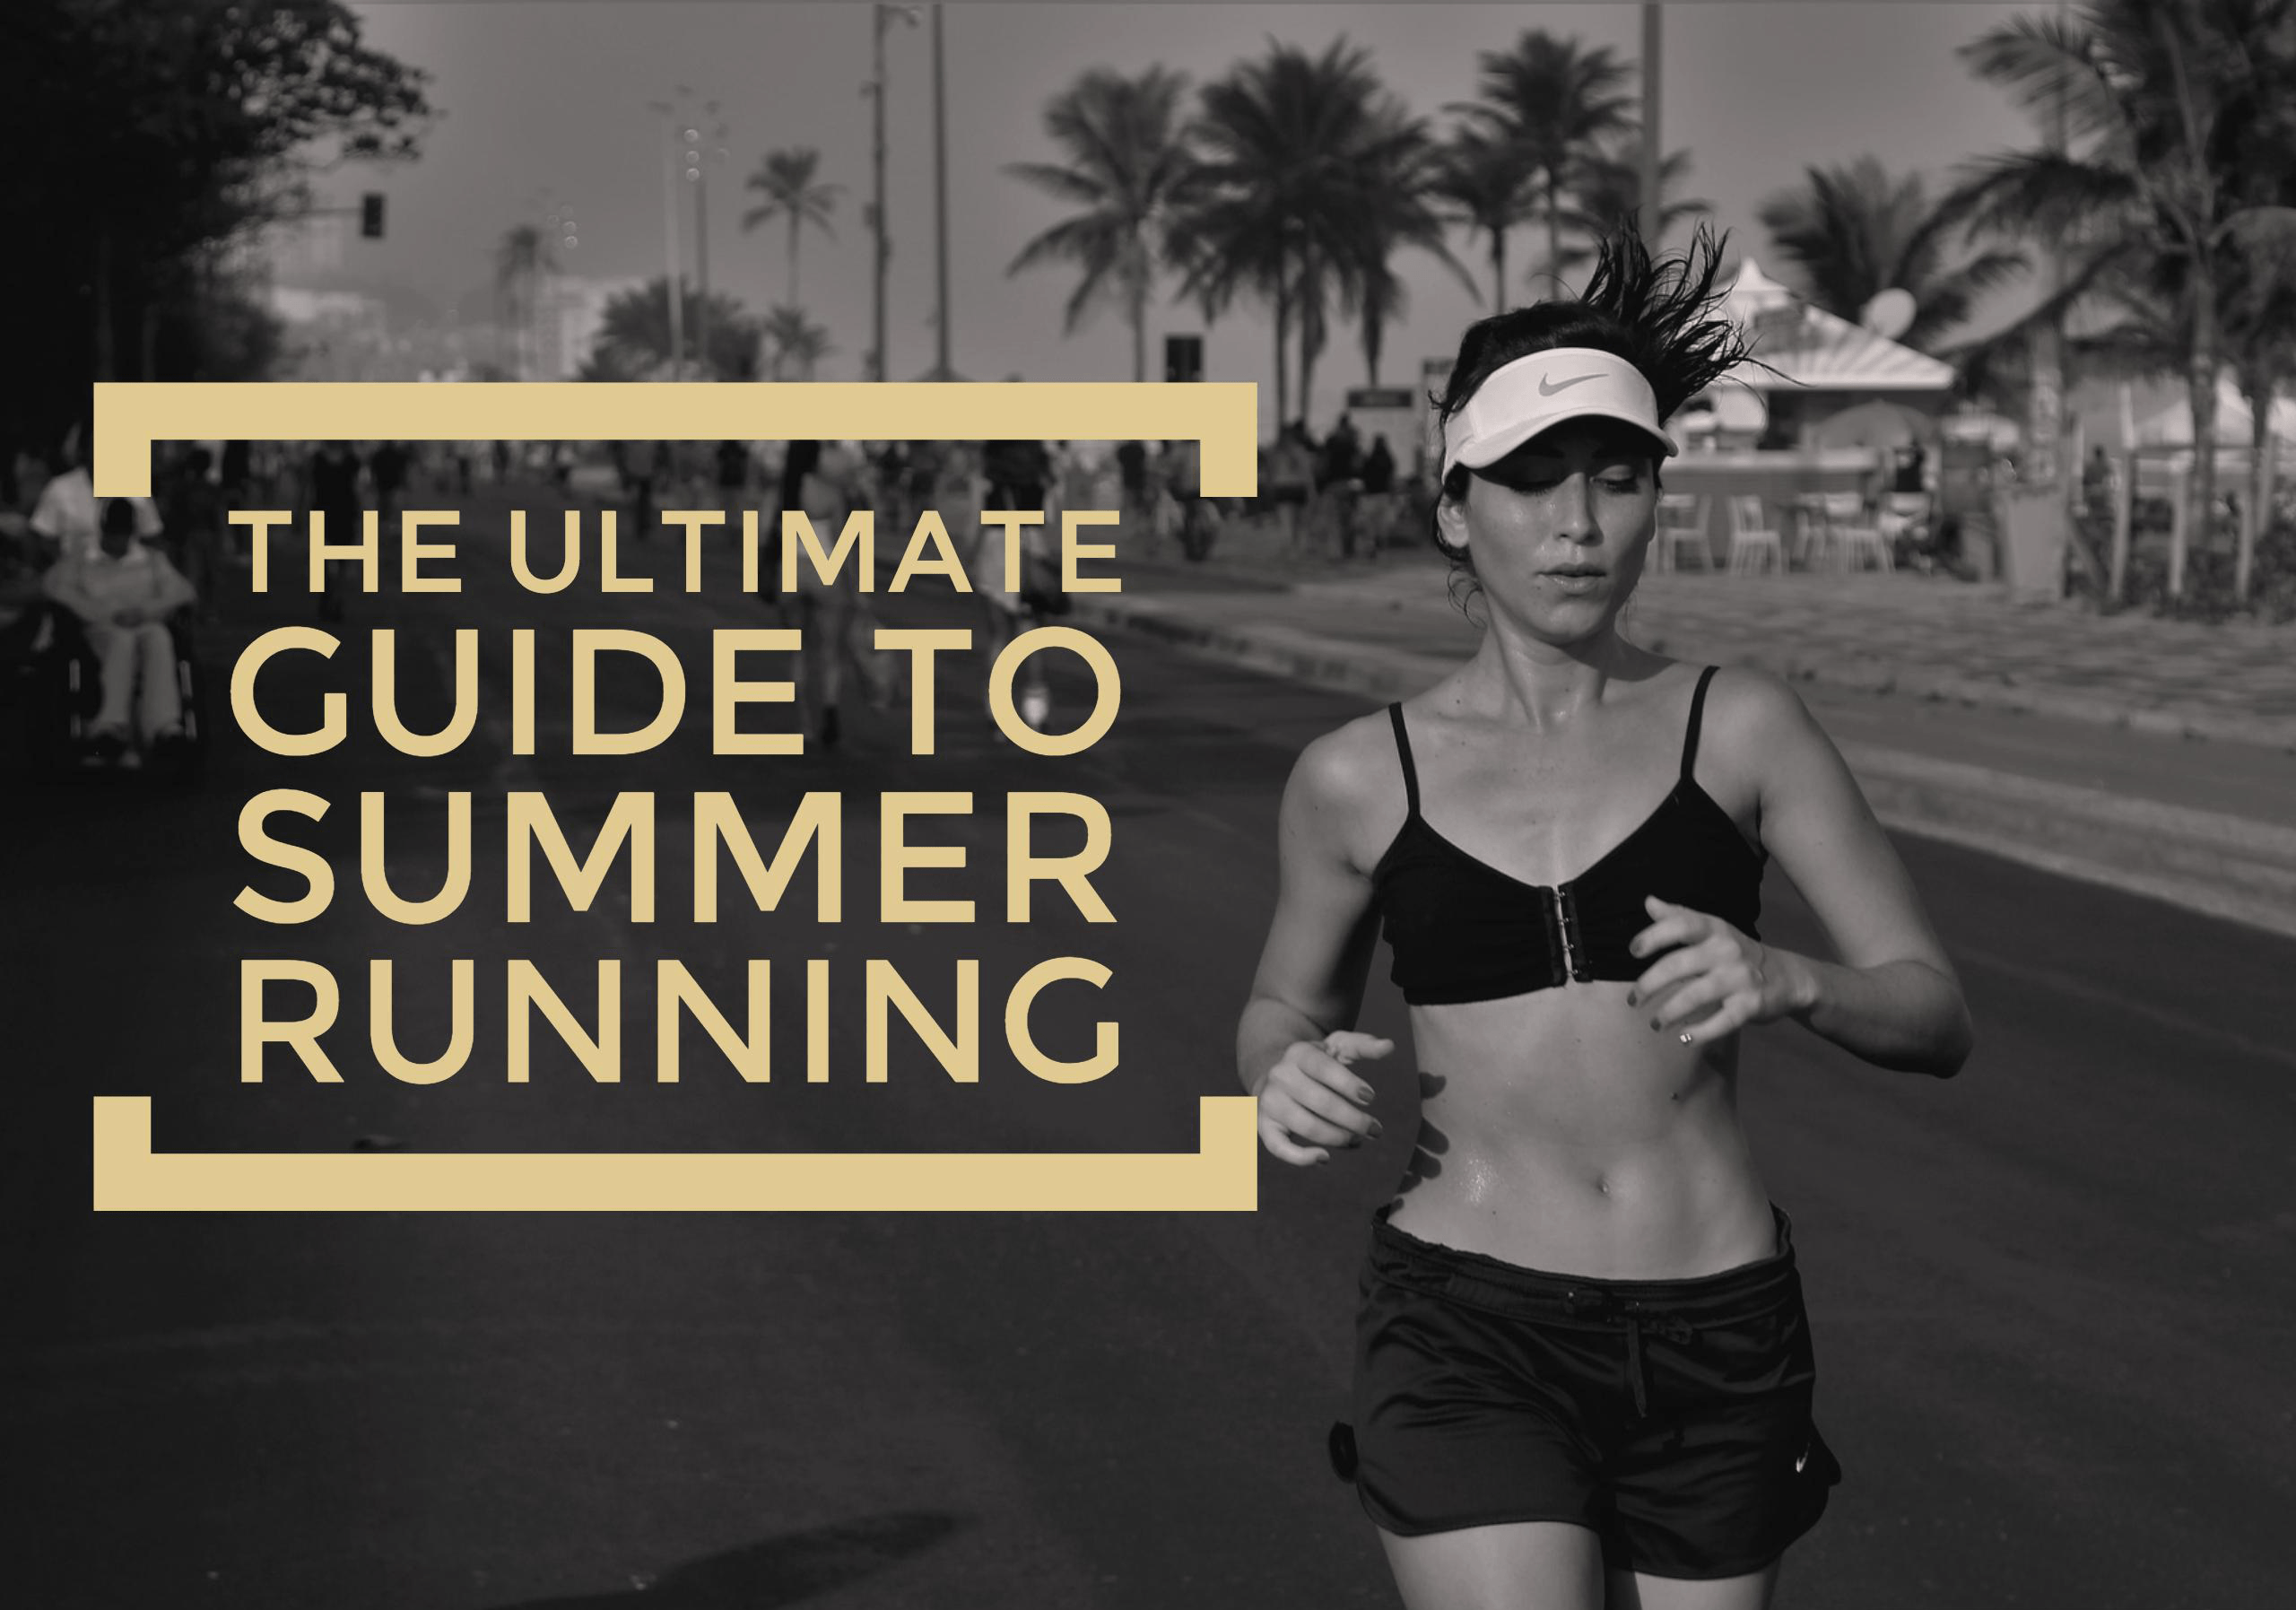 If you are training for a race this summer, there are several things you need to think about especially when the tempatures go up. Our ultimate guide to summer running will keep you cool and injury free.